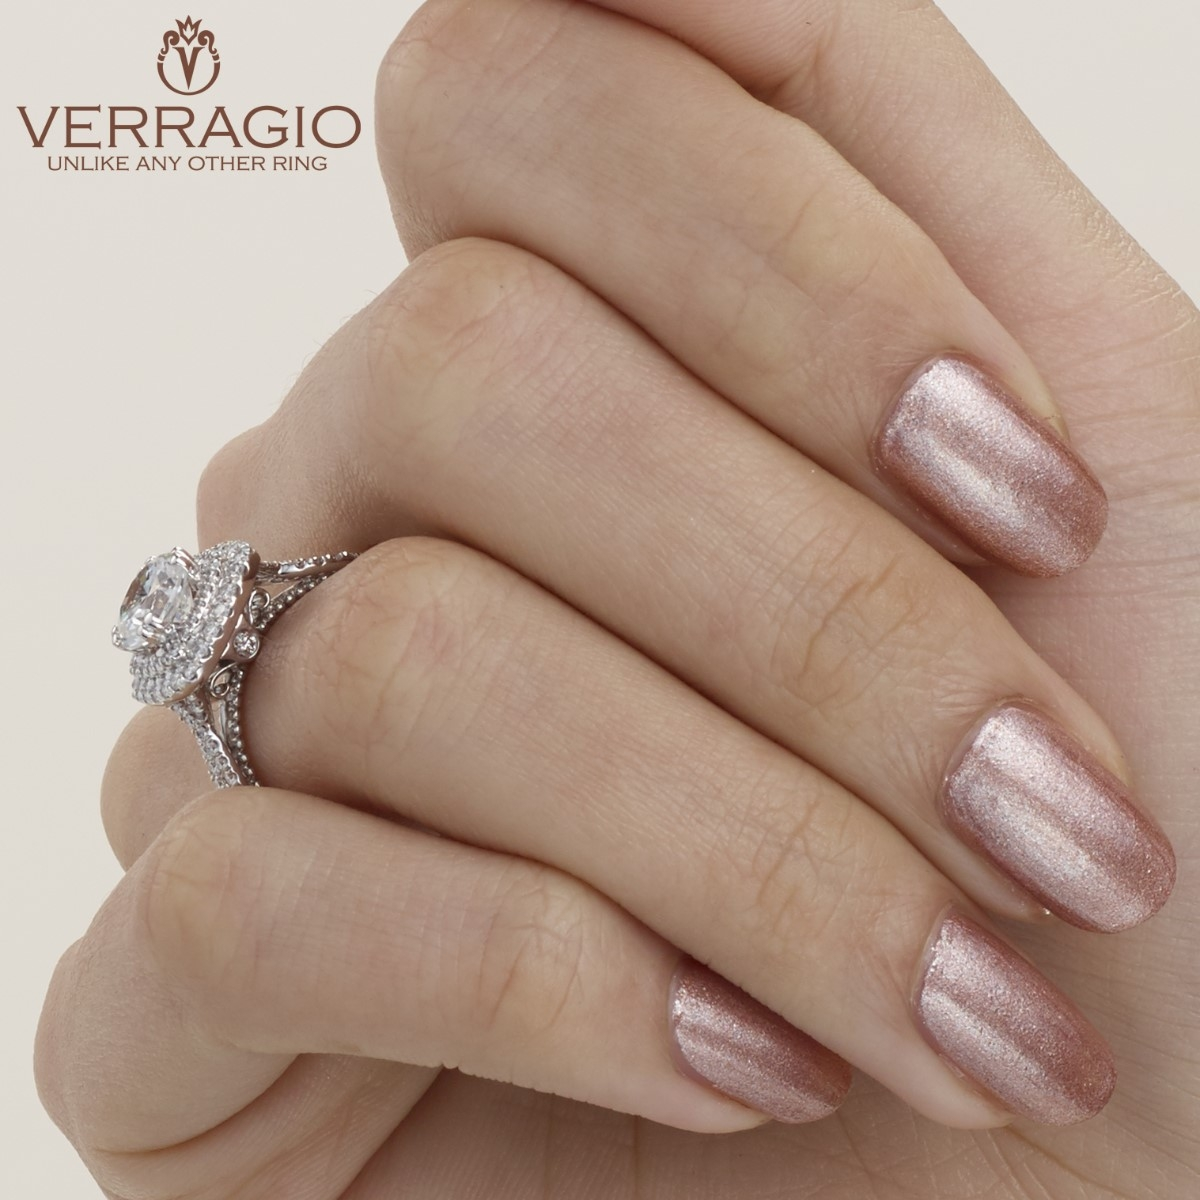 Verragio Parisian-148CU 14 Karat Engagement Ring Alternative View 3